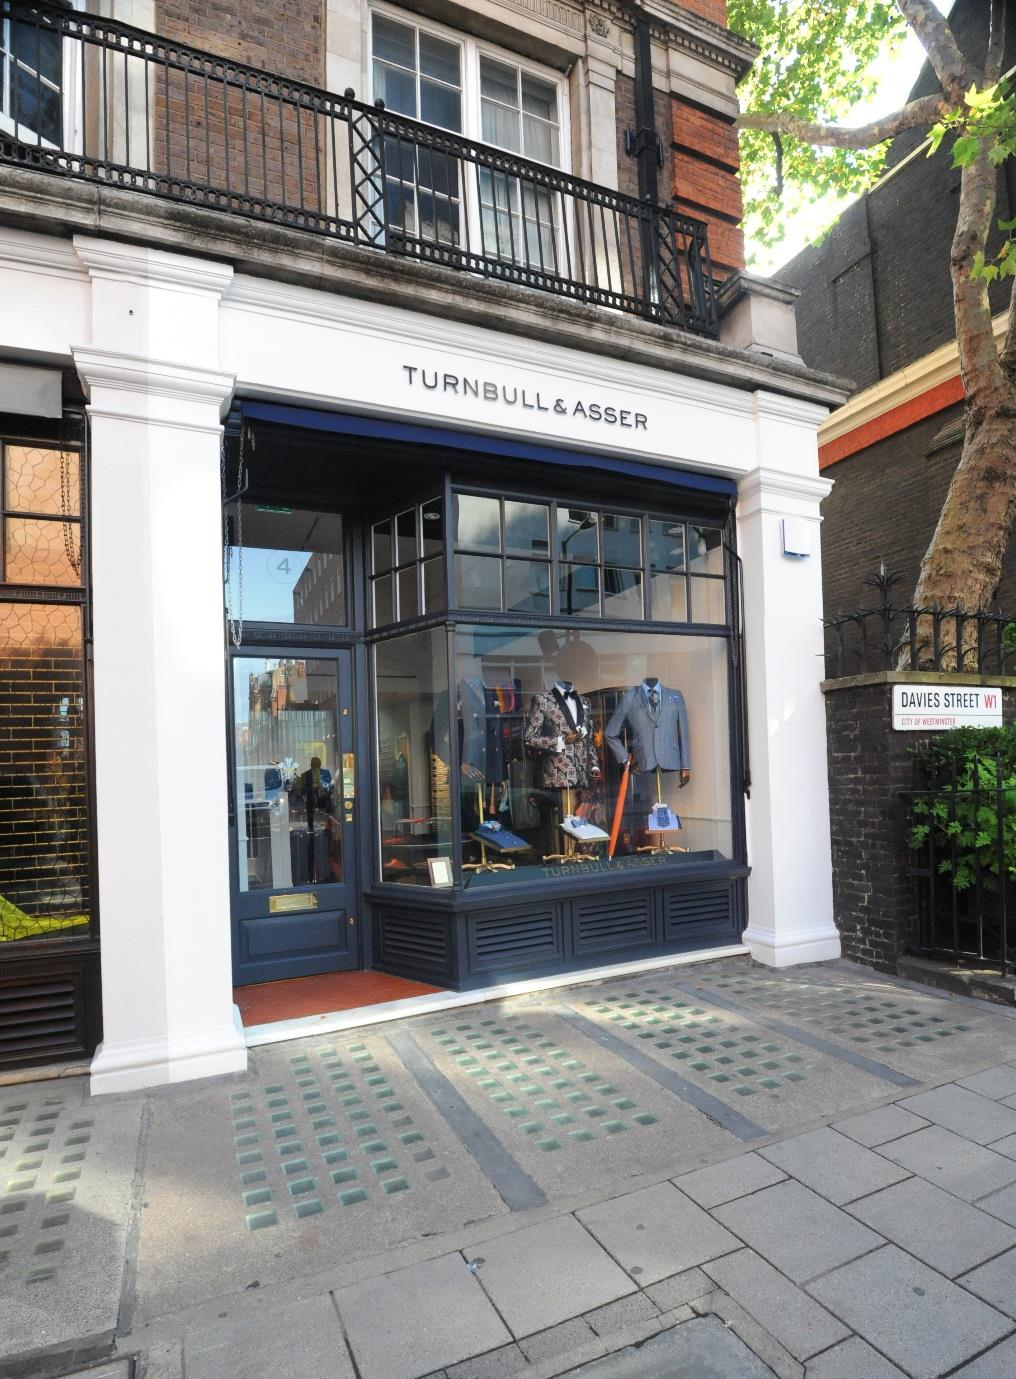 Turnbull & Asser Mayfair, London